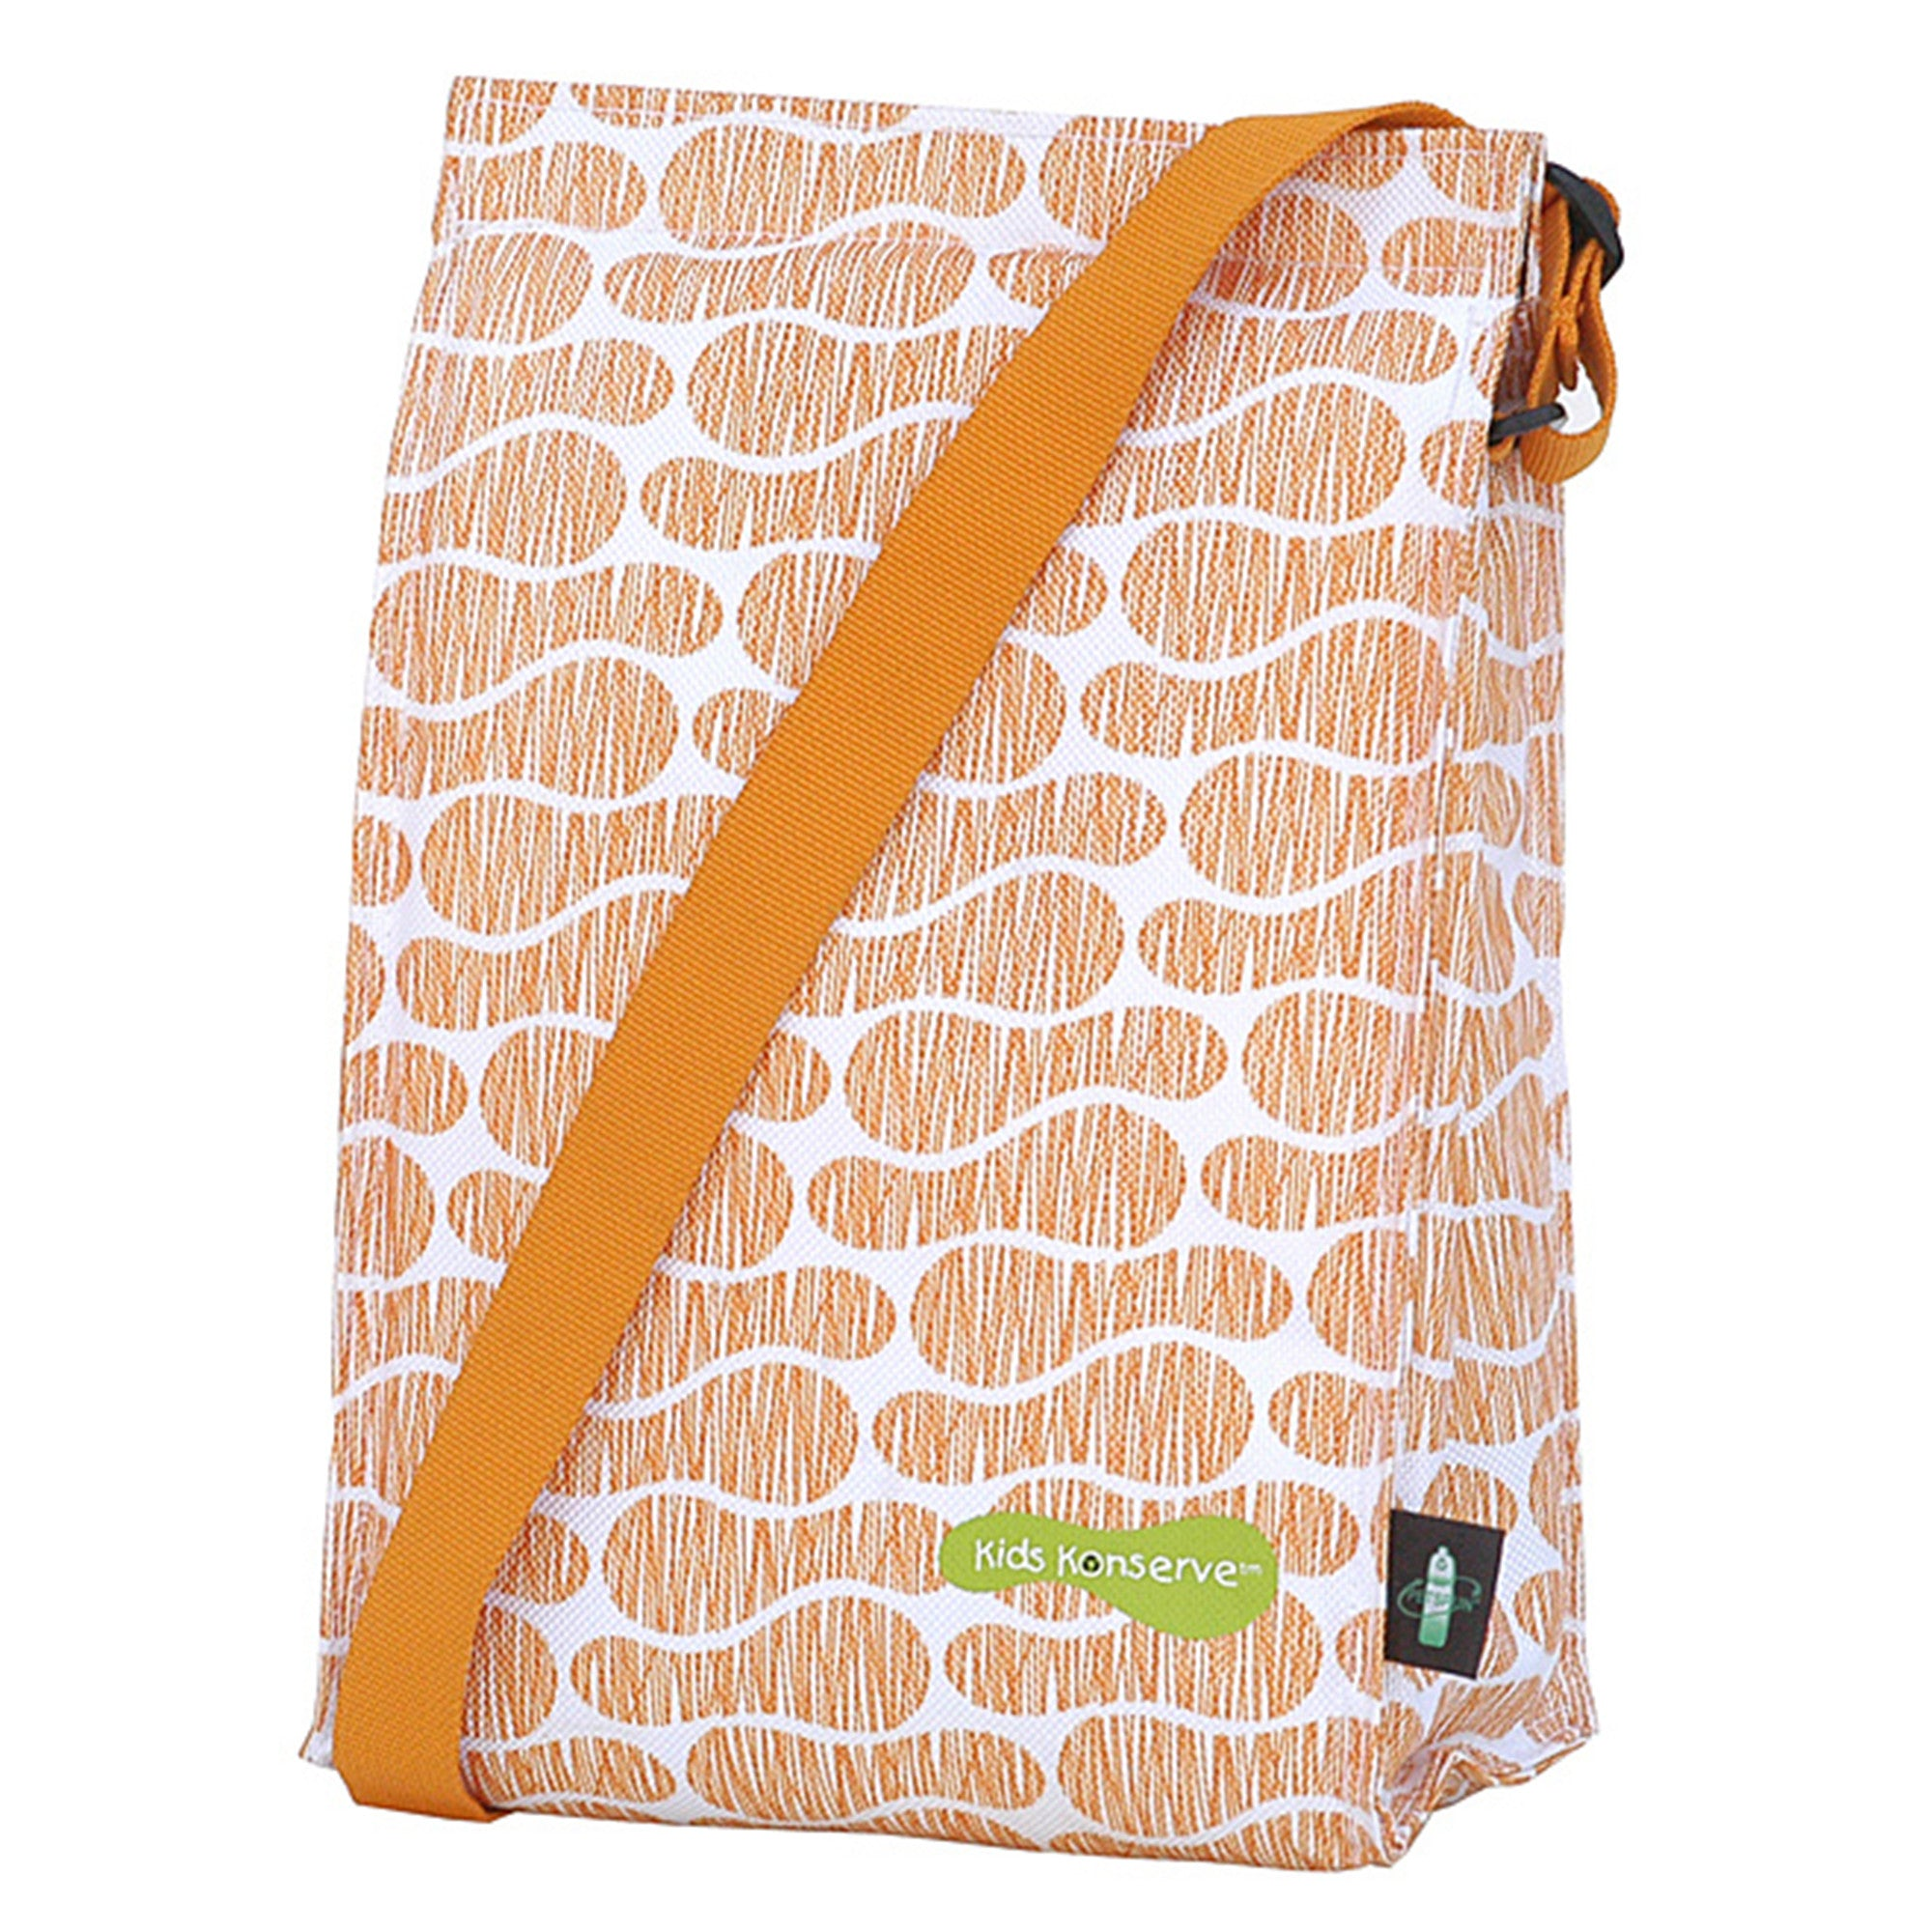 Kids Konserve Insulated Lunch Bag Kids Konserve Lunch Boxes and Bags Beach at Little Earth Nest Eco Shop